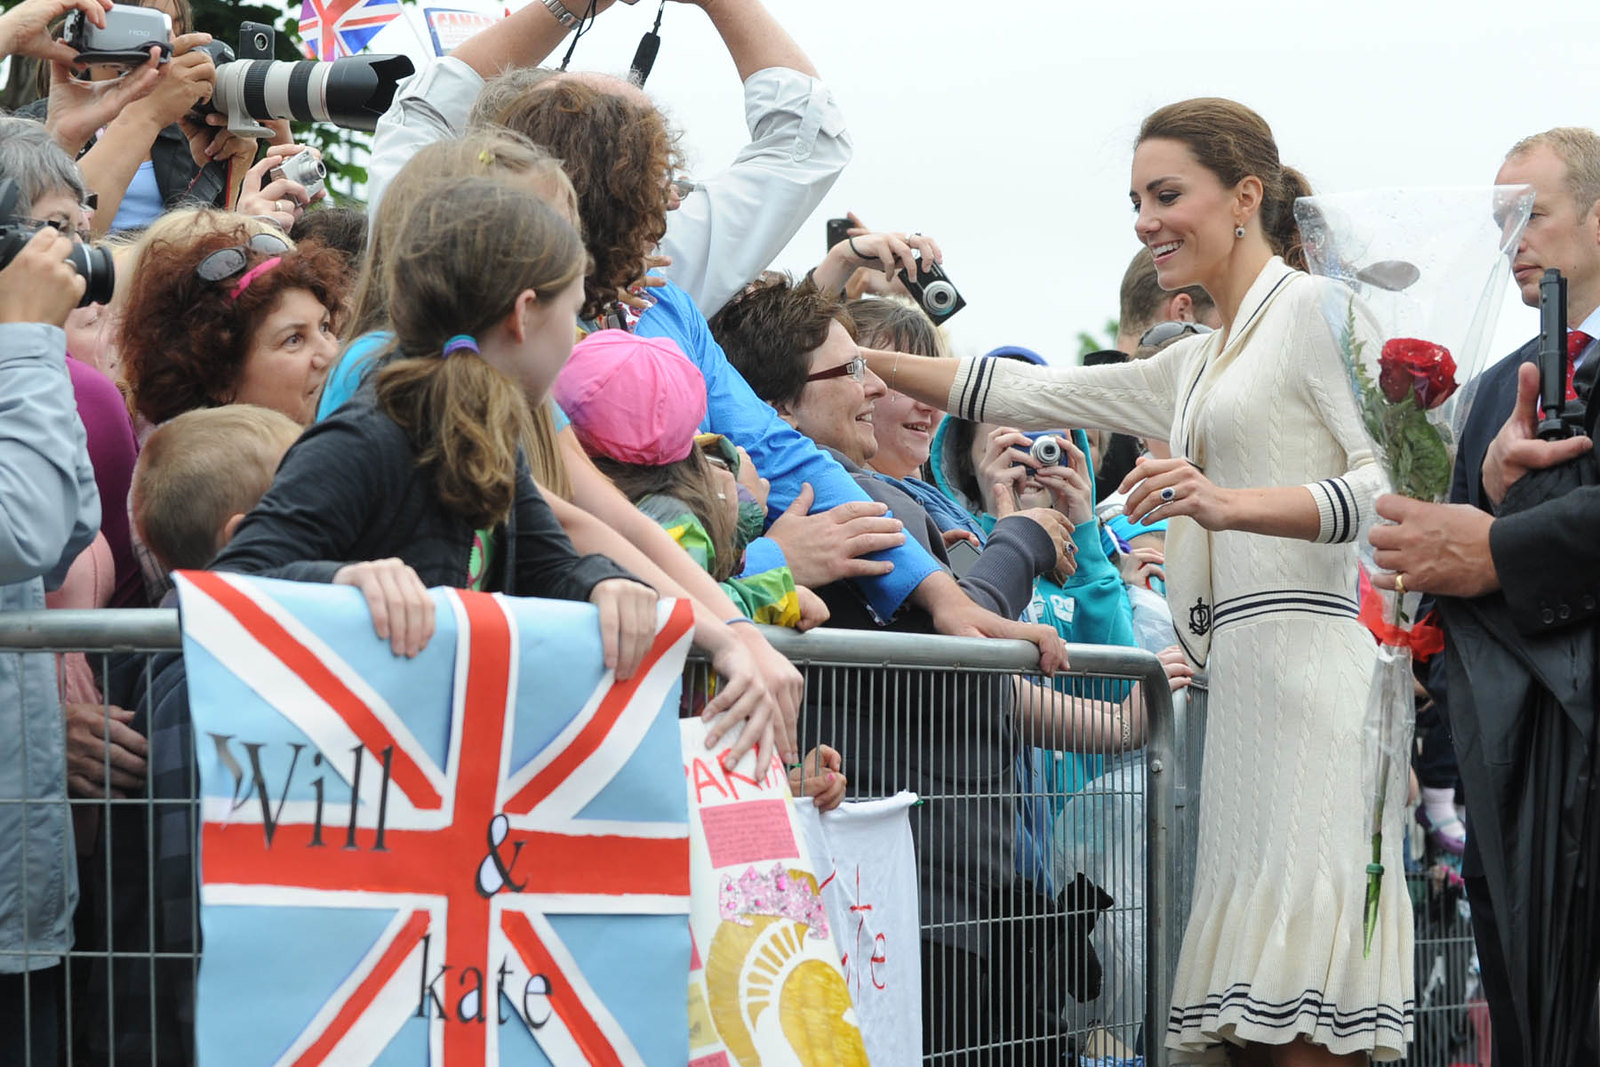 The Duchess of Cambridge met with public in Charlottetown